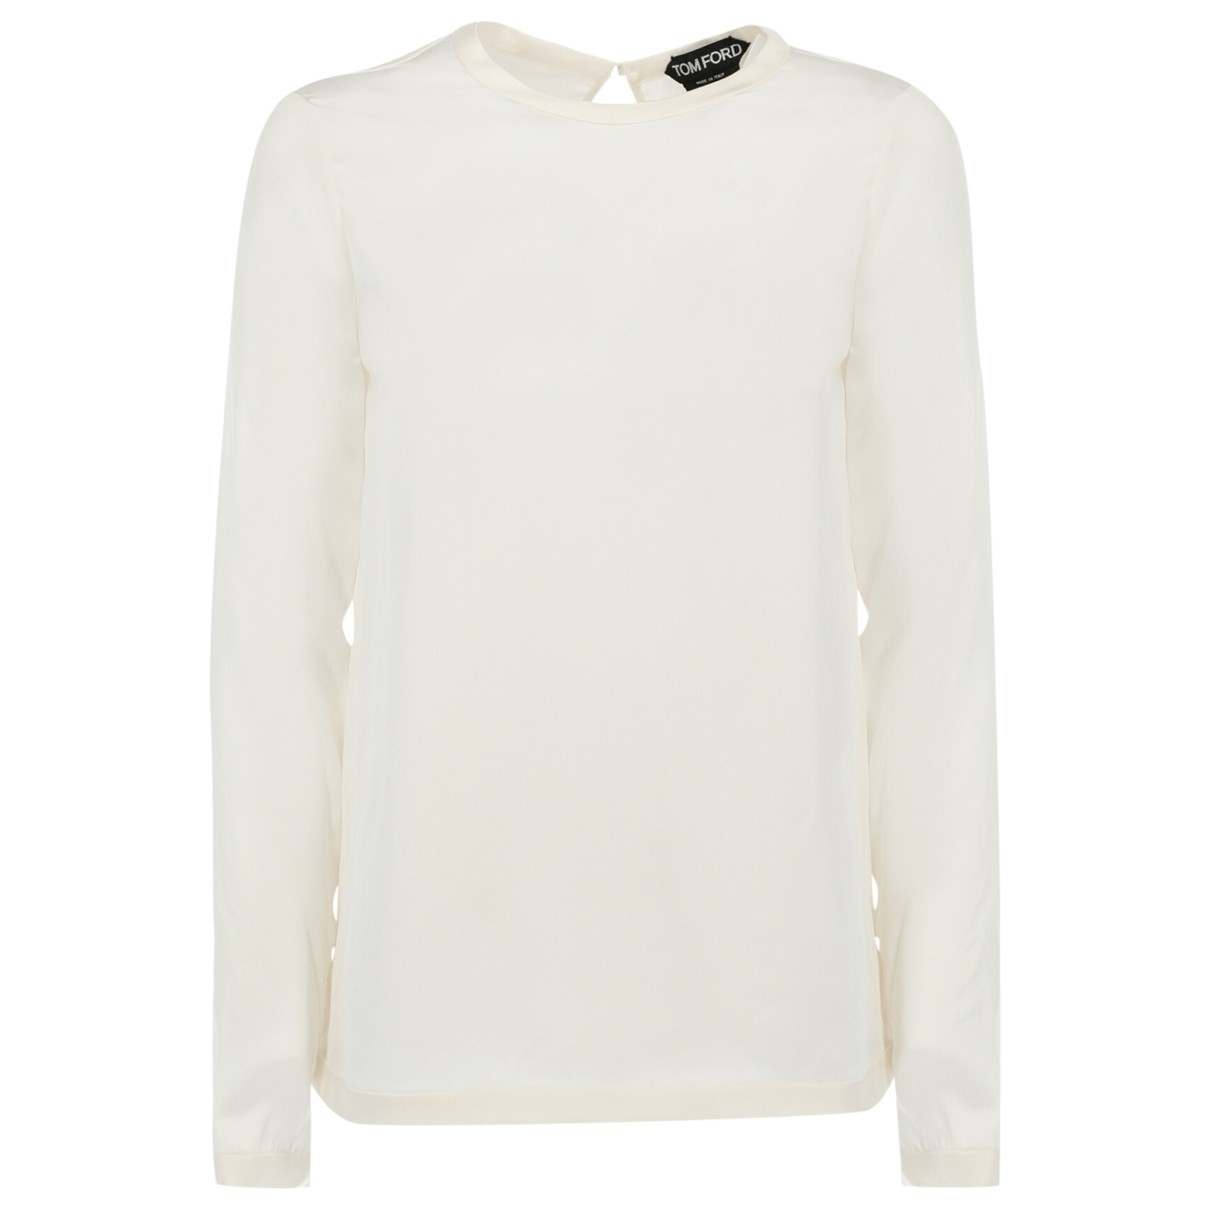 Tom Ford \N White Cotton  top for Women 36 IT